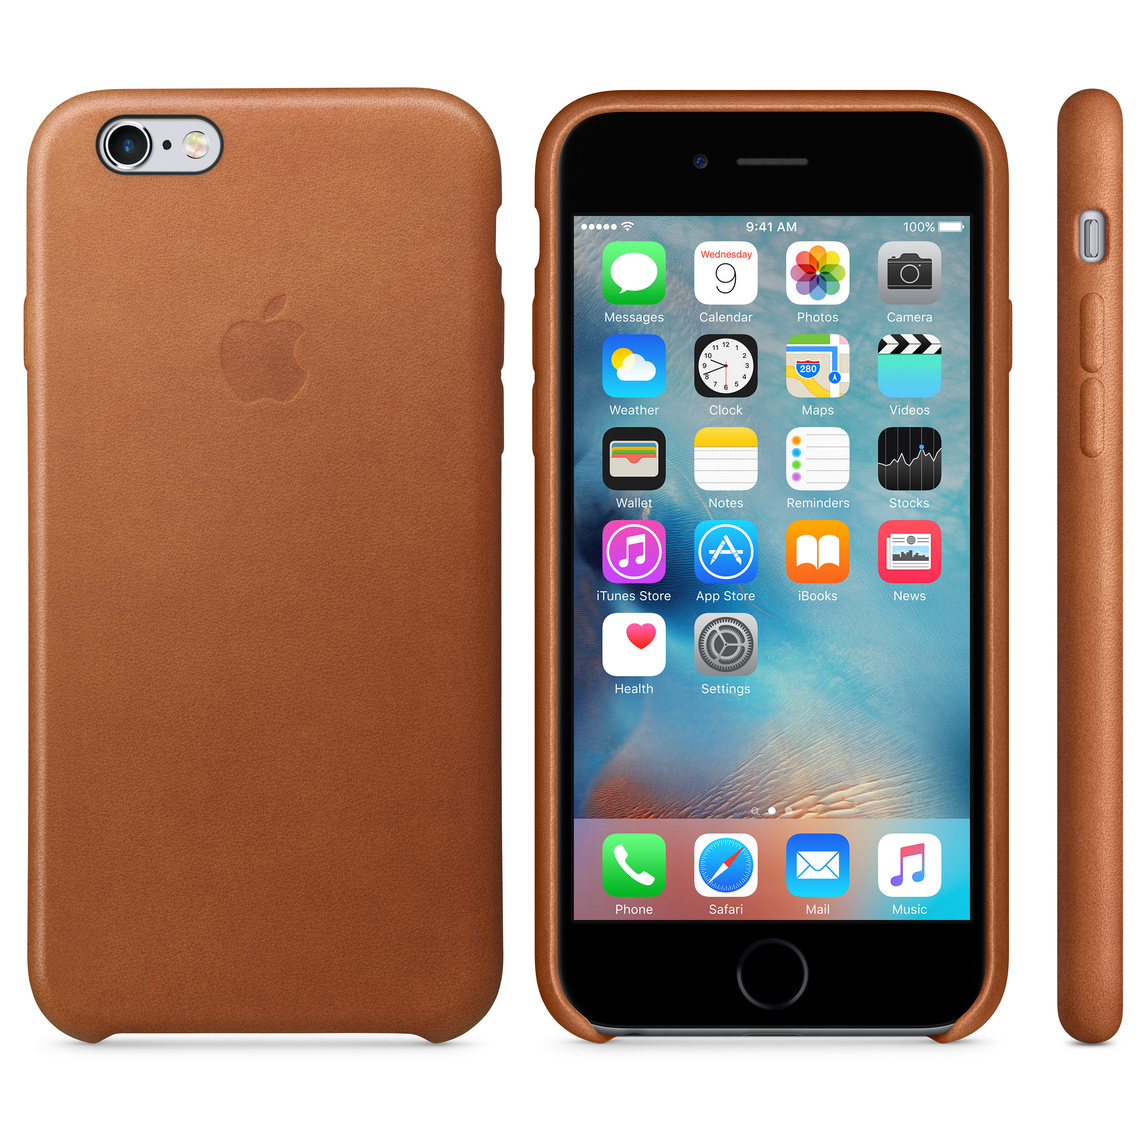 reputable site 063ac c1167 iPhone 6 / 6s Leather Case - Saddle Brown